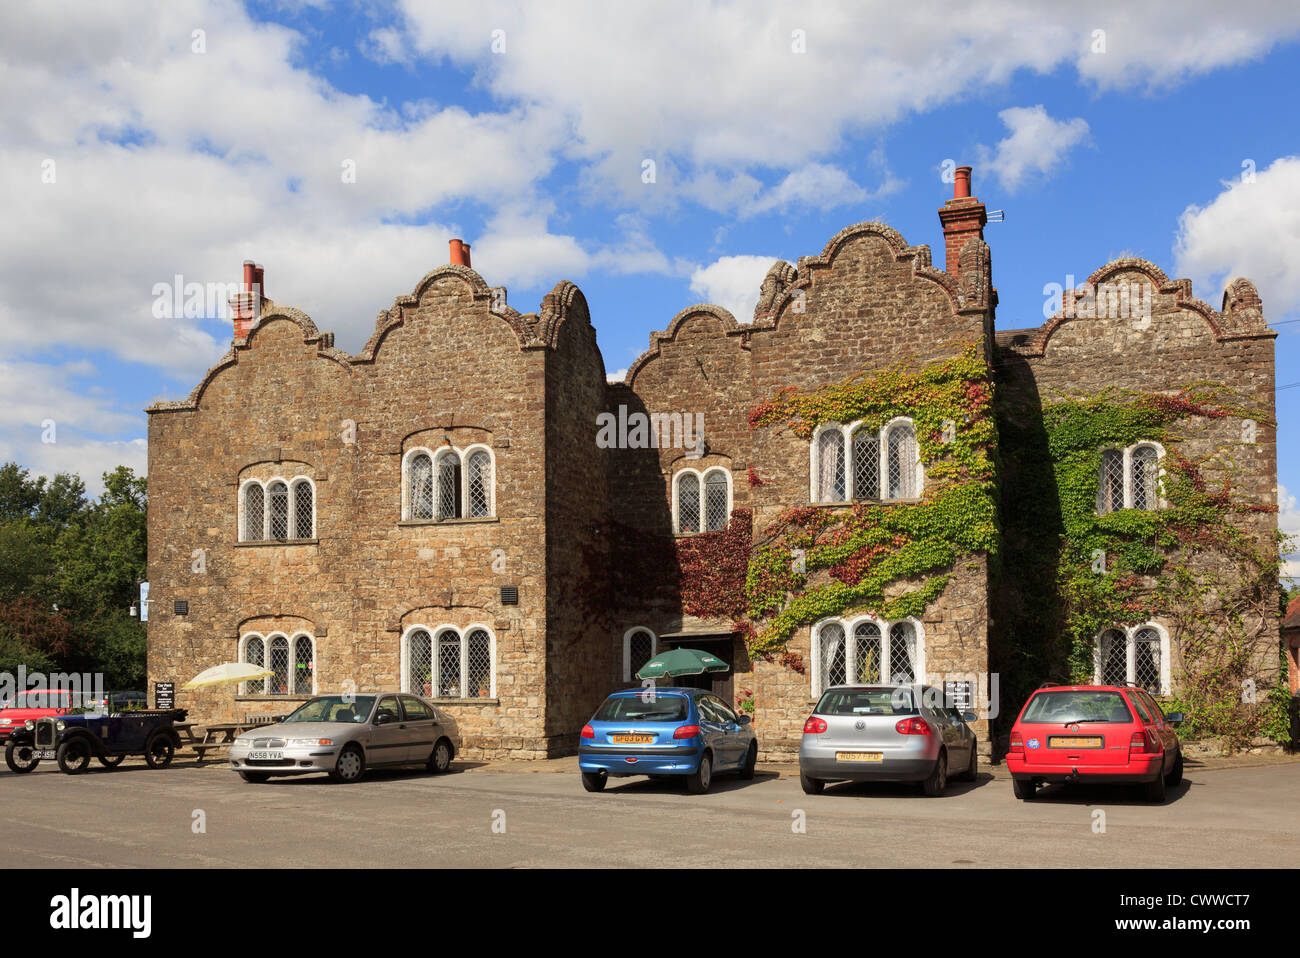 Dering Arms free house country pub gourmet restaurant and hotel supposedly haunted by a ghost of an old lady Pluckley - Stock Image